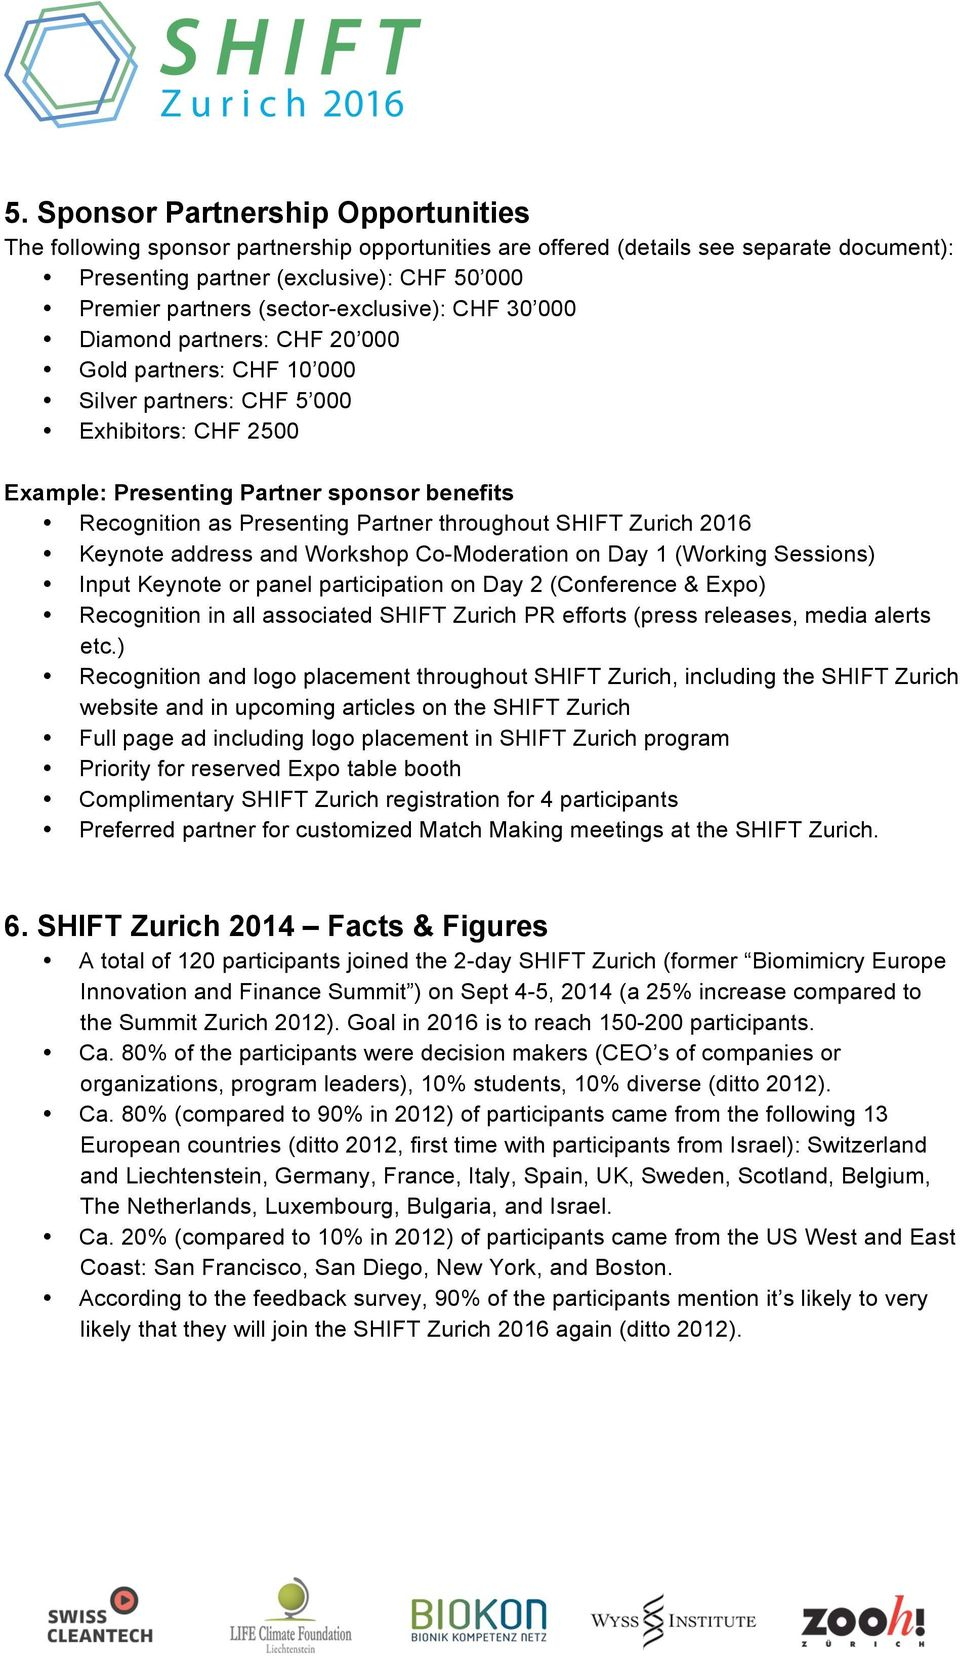 Presenting Partner throughout SHIFT Zurich 2016 Keynote address and Workshop Co-Moderation on Day 1 (Working Sessions) Input Keynote or panel participation on Day 2 (Conference & Expo) Recognition in